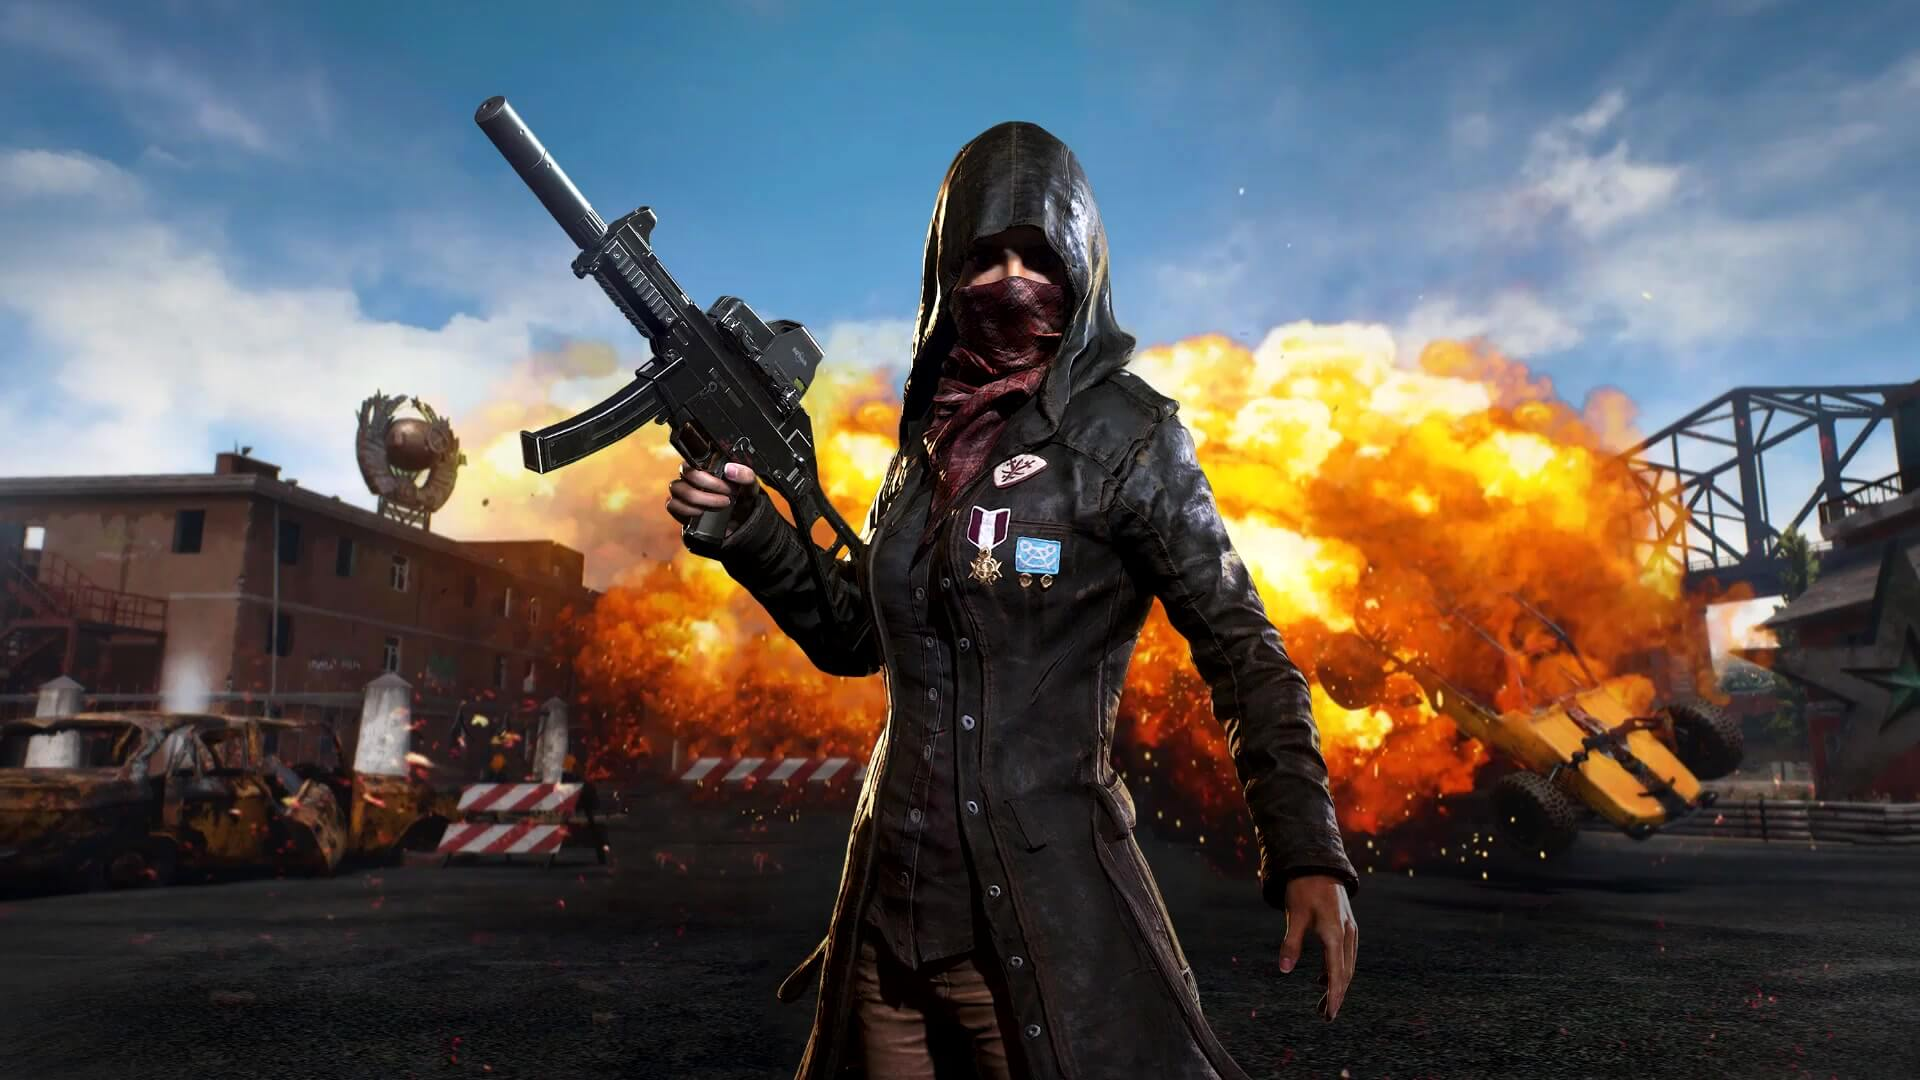 Nepal bans PUBG at the request of schools and parents